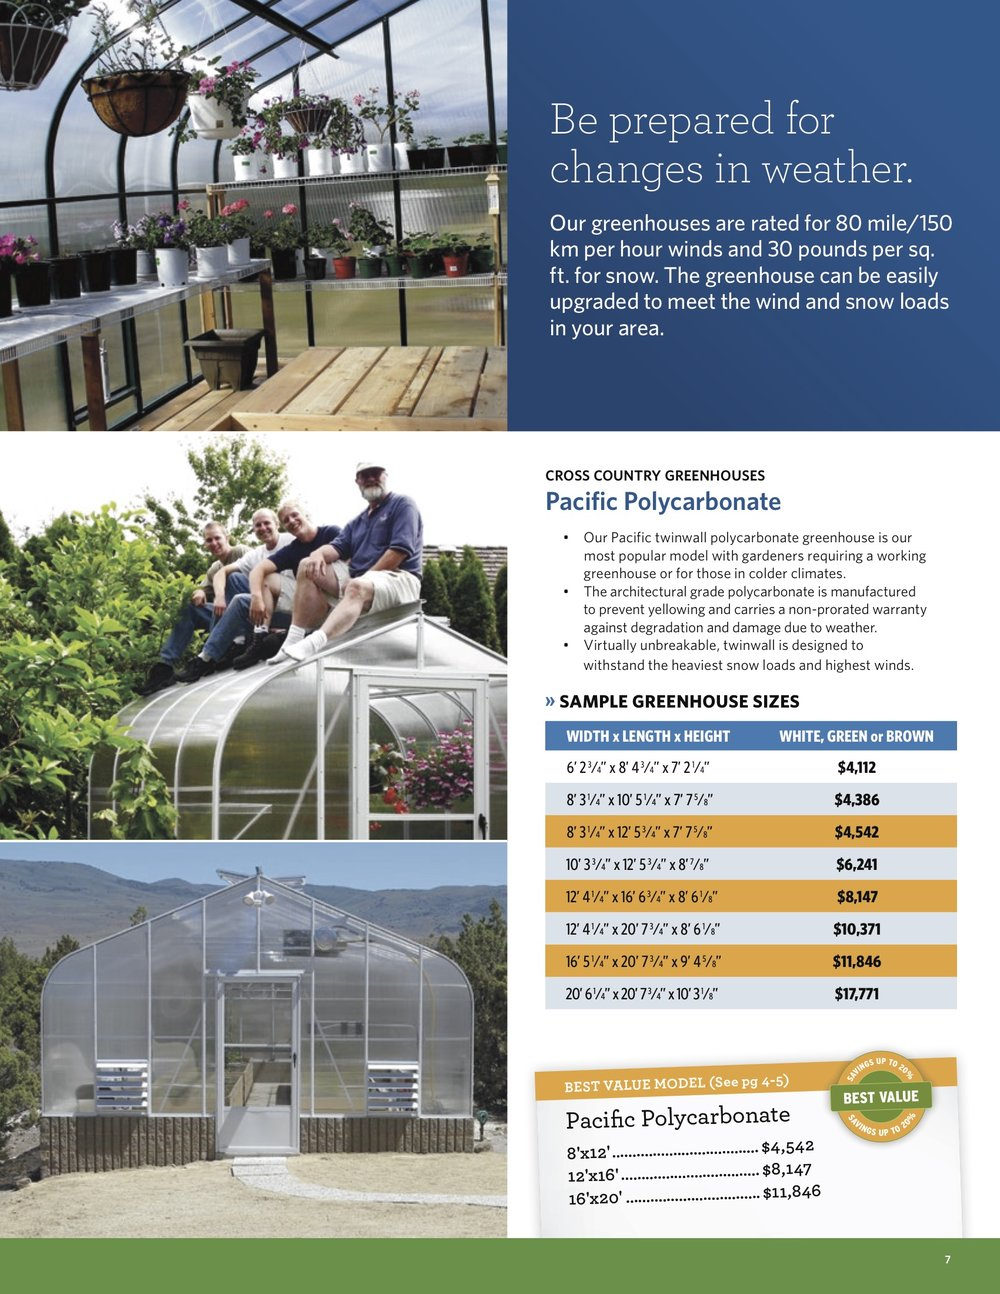 111552_Wisconsin Greenhouse Company_National Catalog (4) (dragged) 6.jpeg